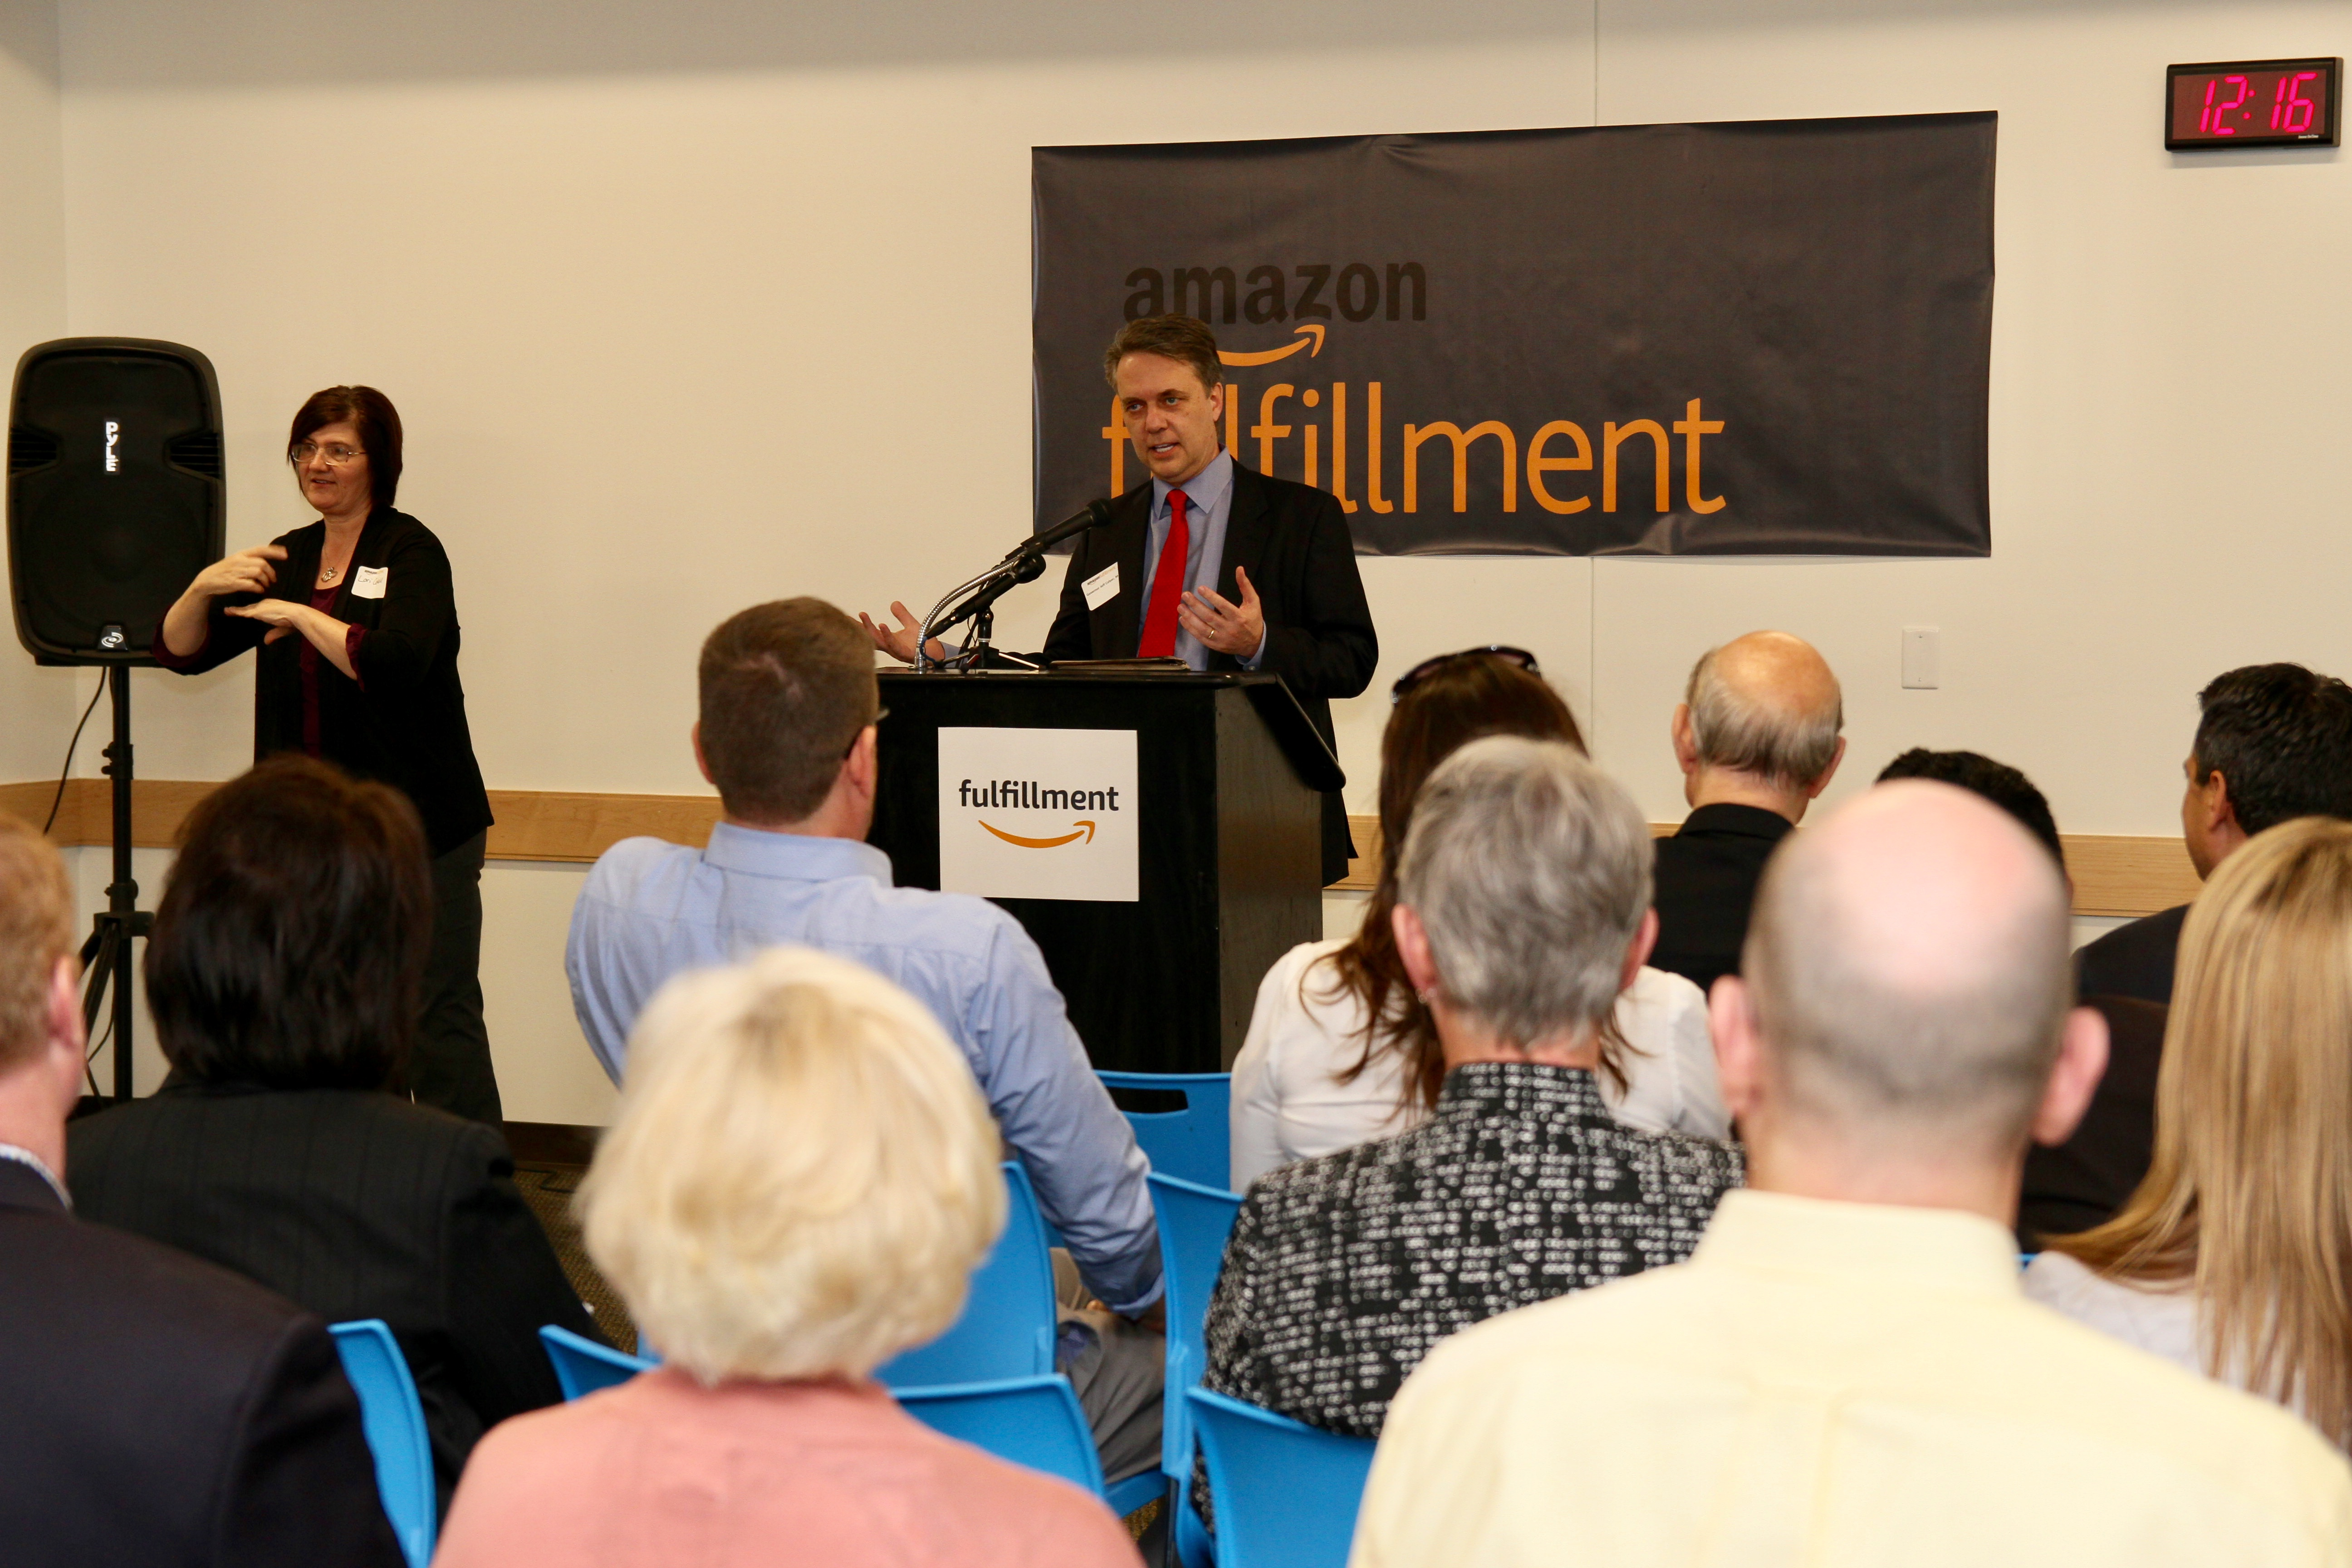 Governor Jeff Colyer, M.D. Attends Grand Opening of New Amazon Fulfillment Center